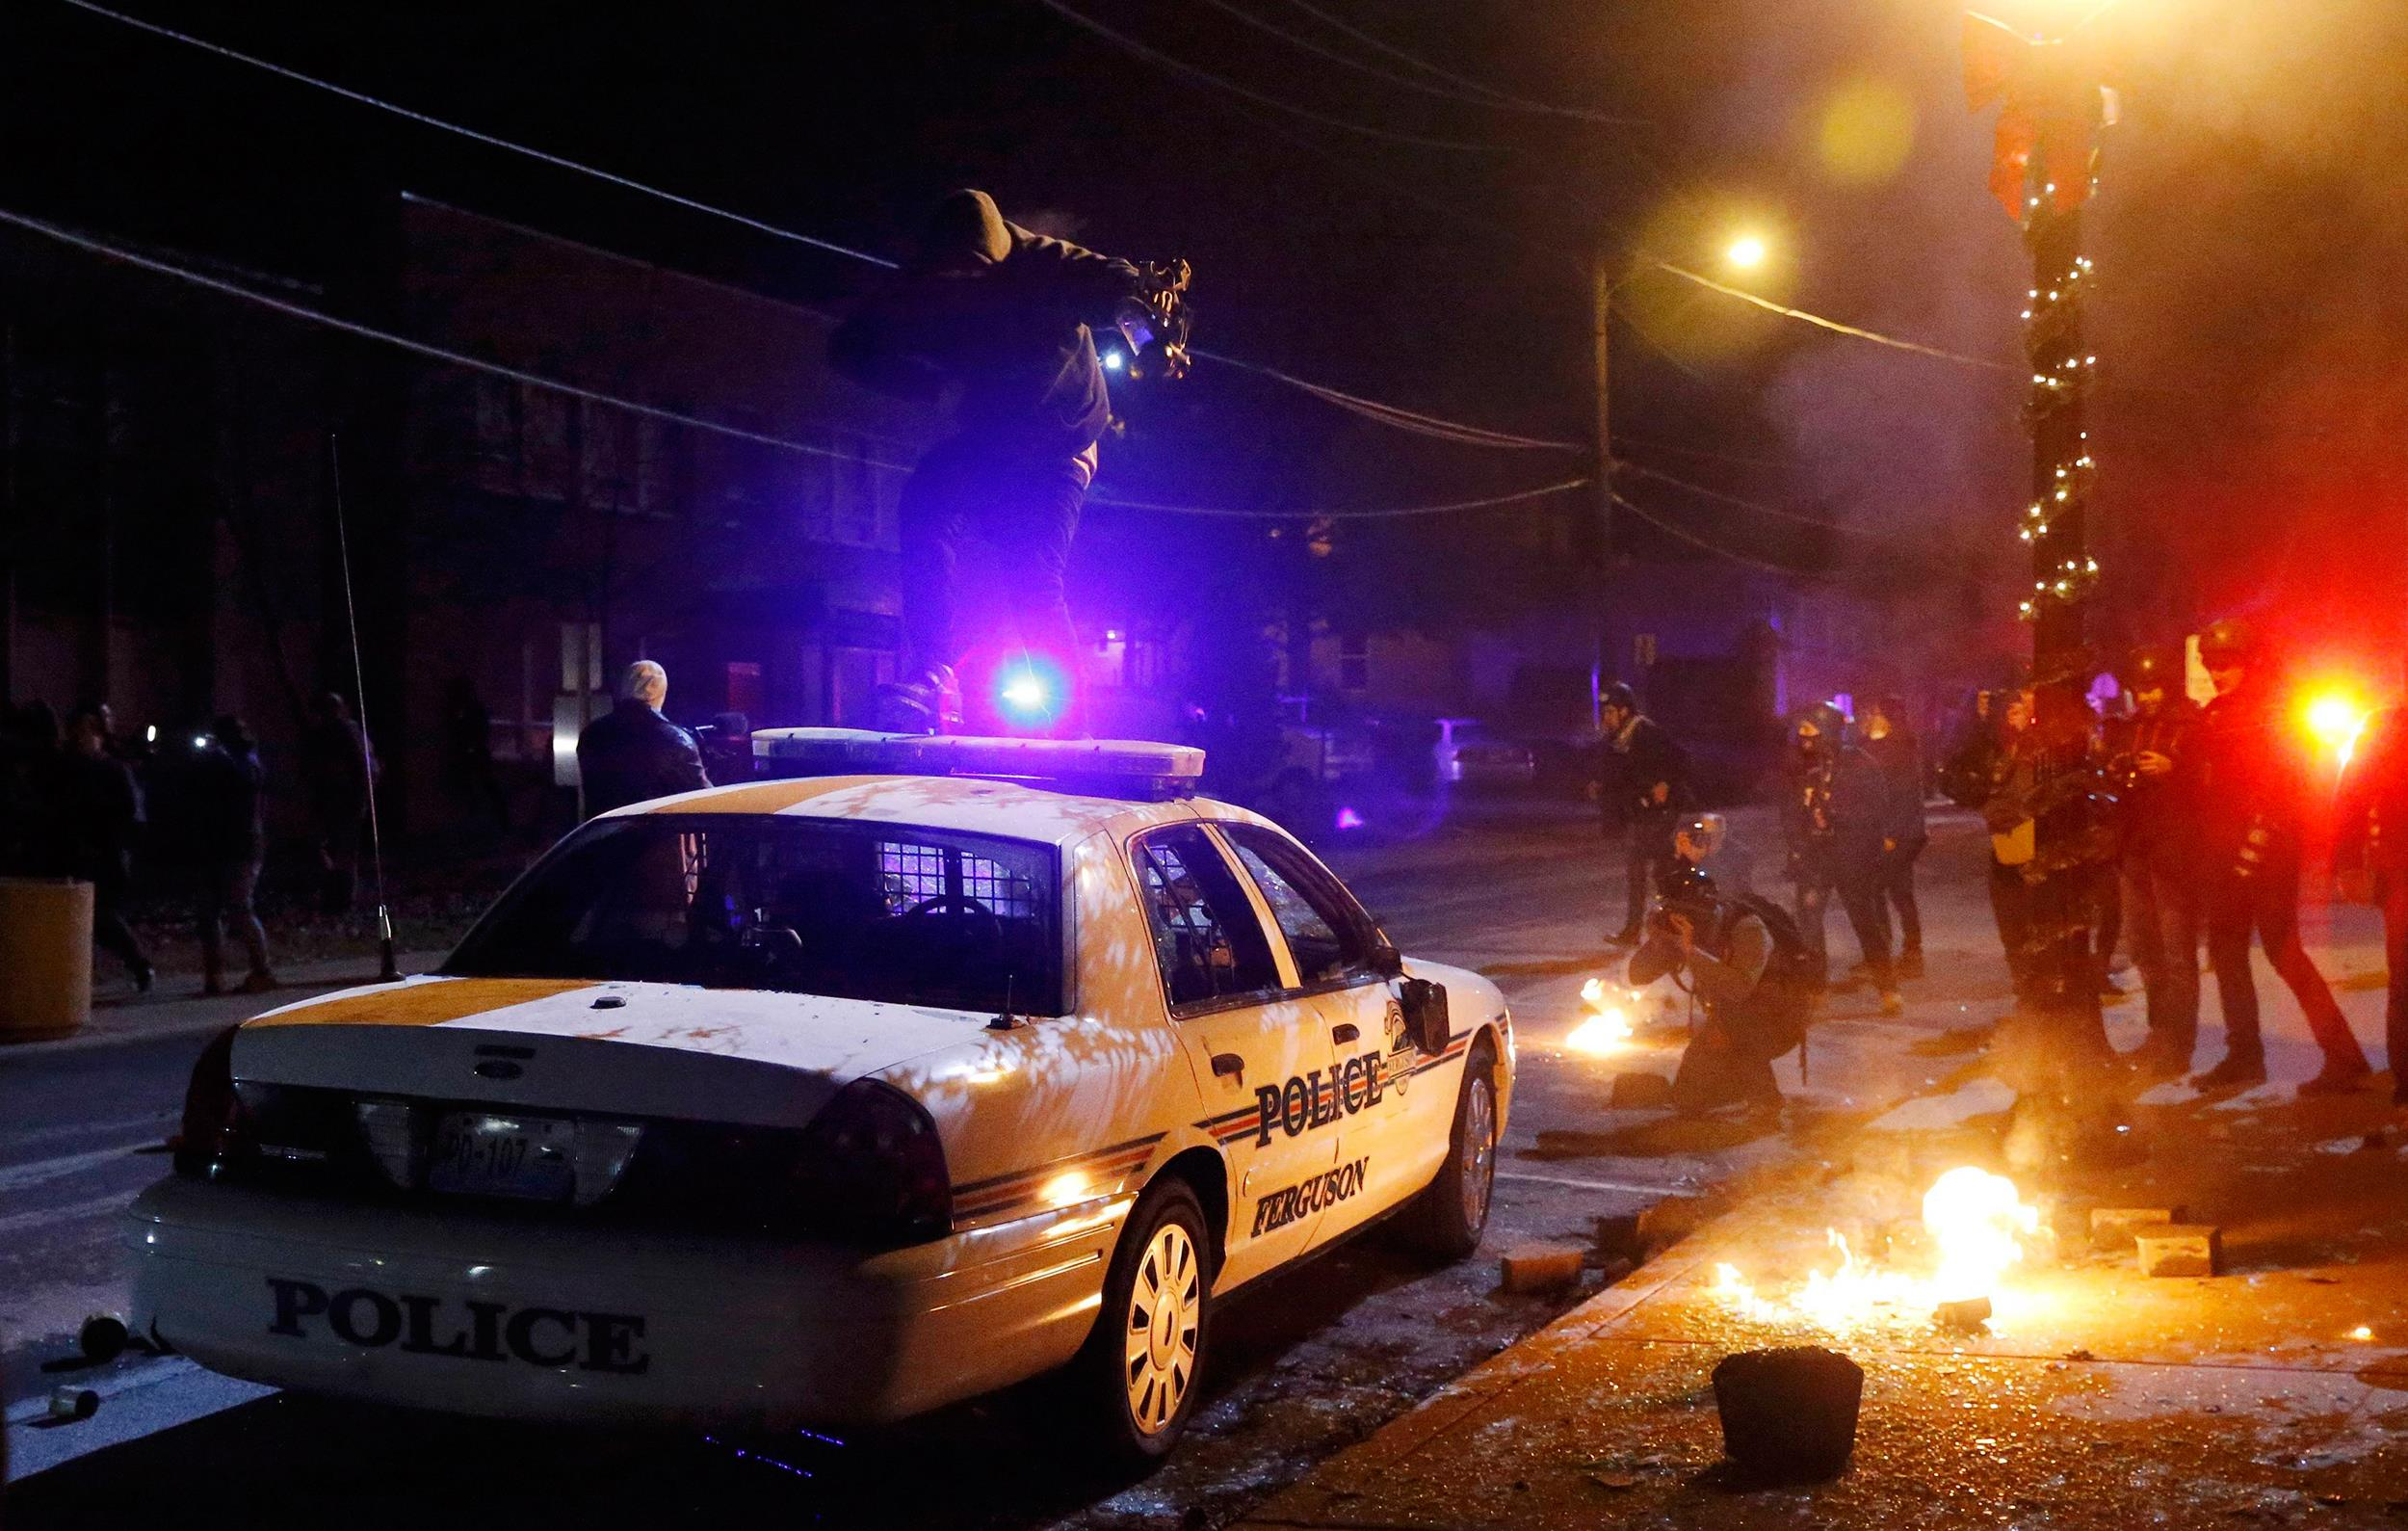 Flare-Up: Protesters and Police in Tense Showdown in Ferguson